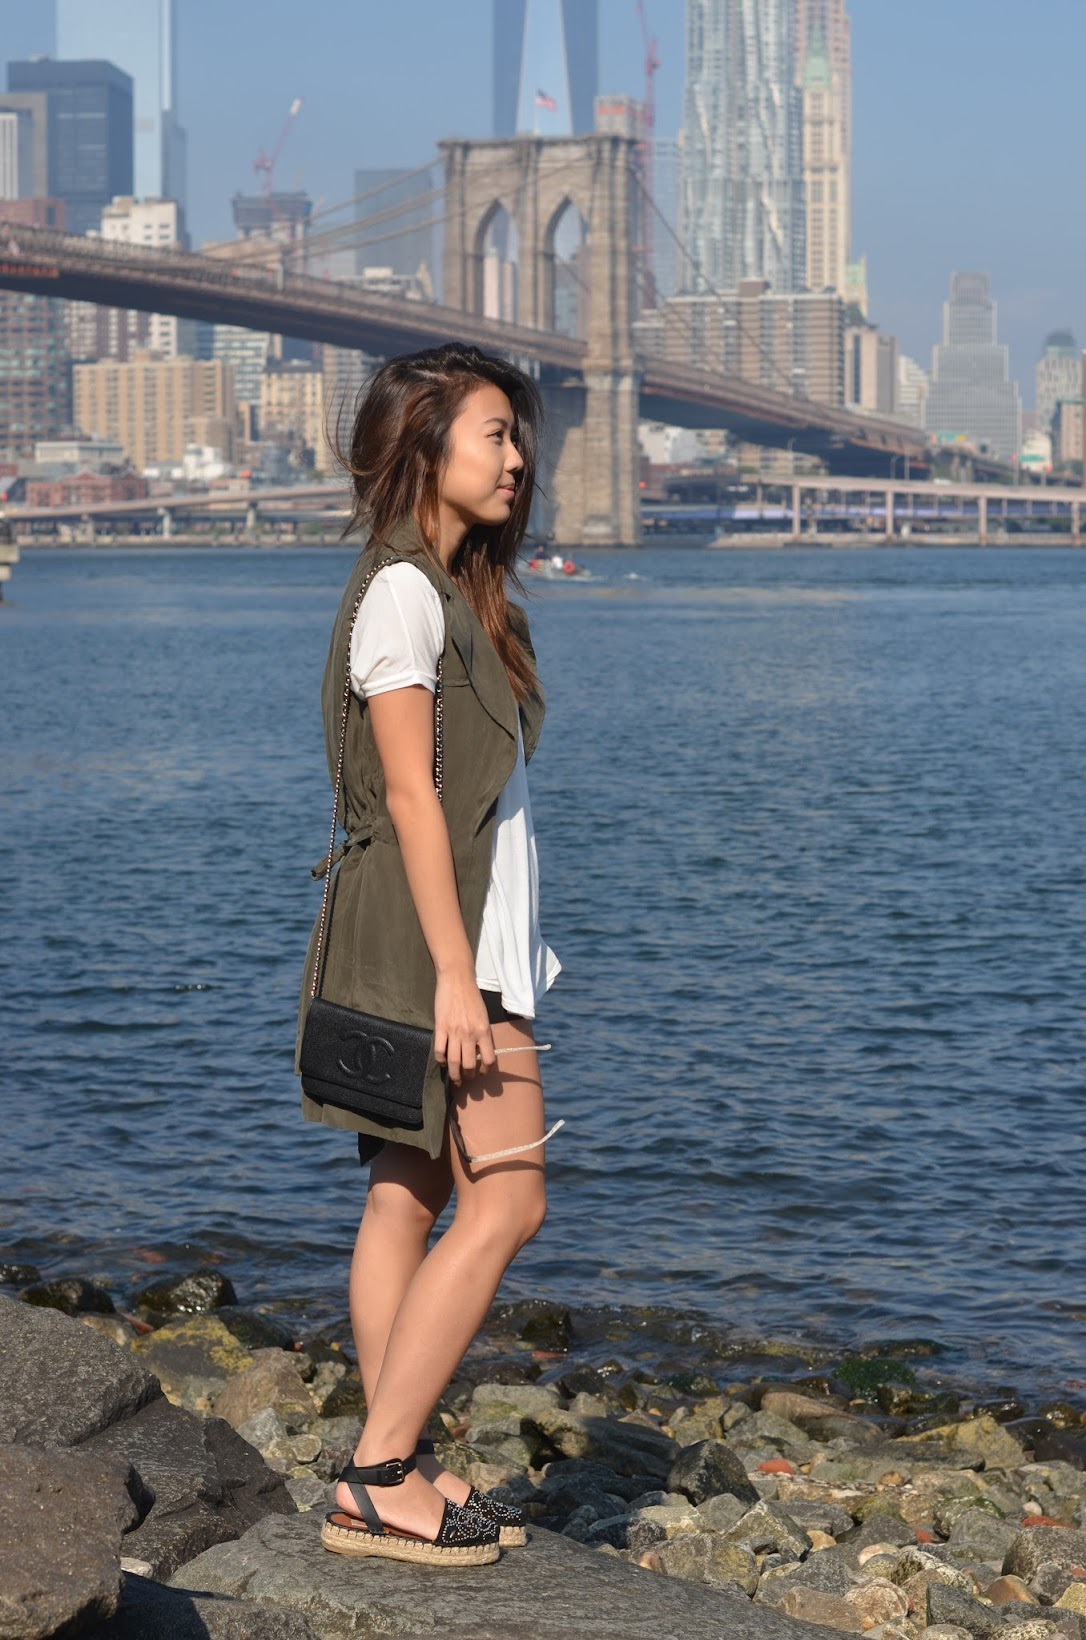 explicit affairs dumbo brooklyn outfit valentino espadrilles green vest